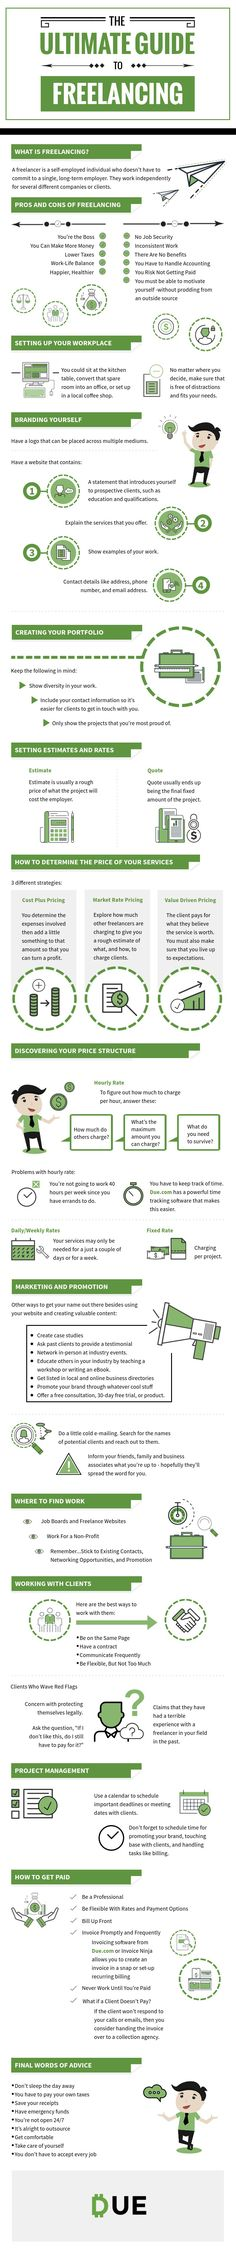 freelancing-guide-for-small-business-owners